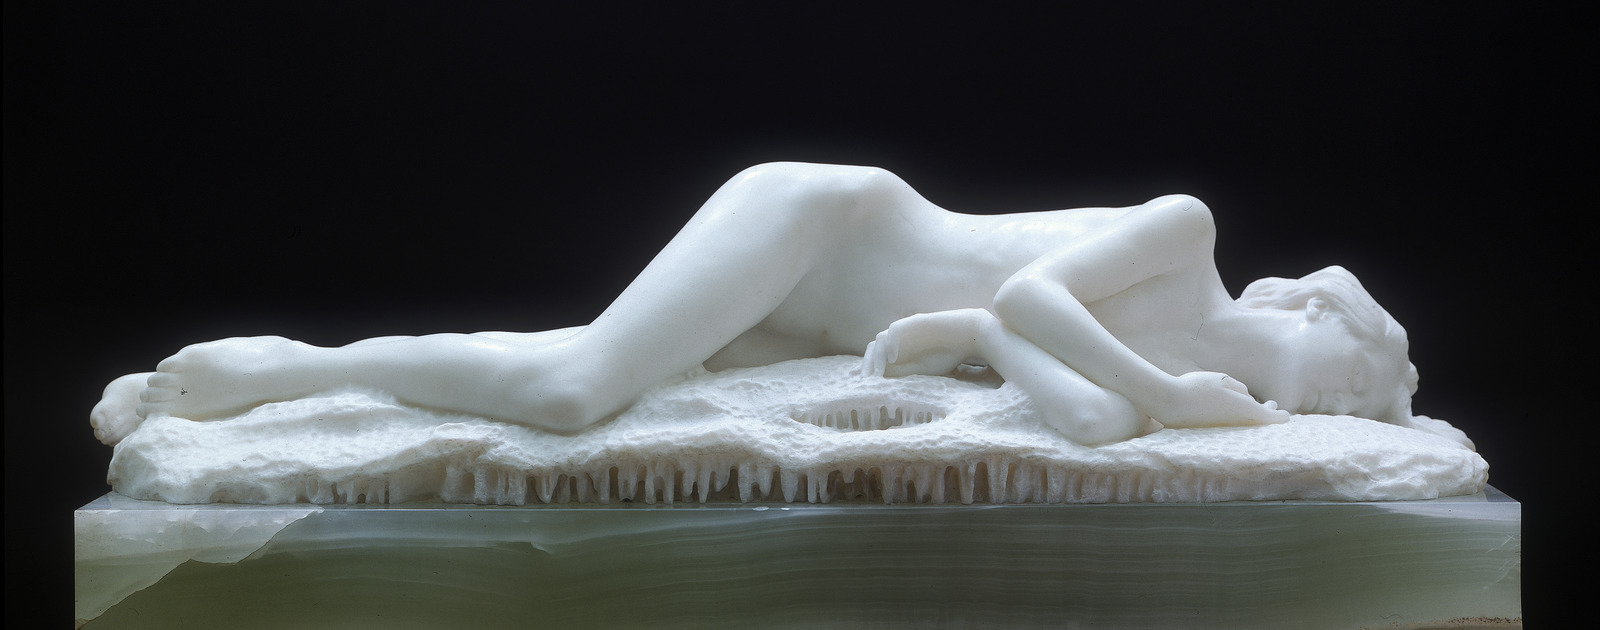 Edward Onslow Ford's Sculpture Snowdrift, 1901